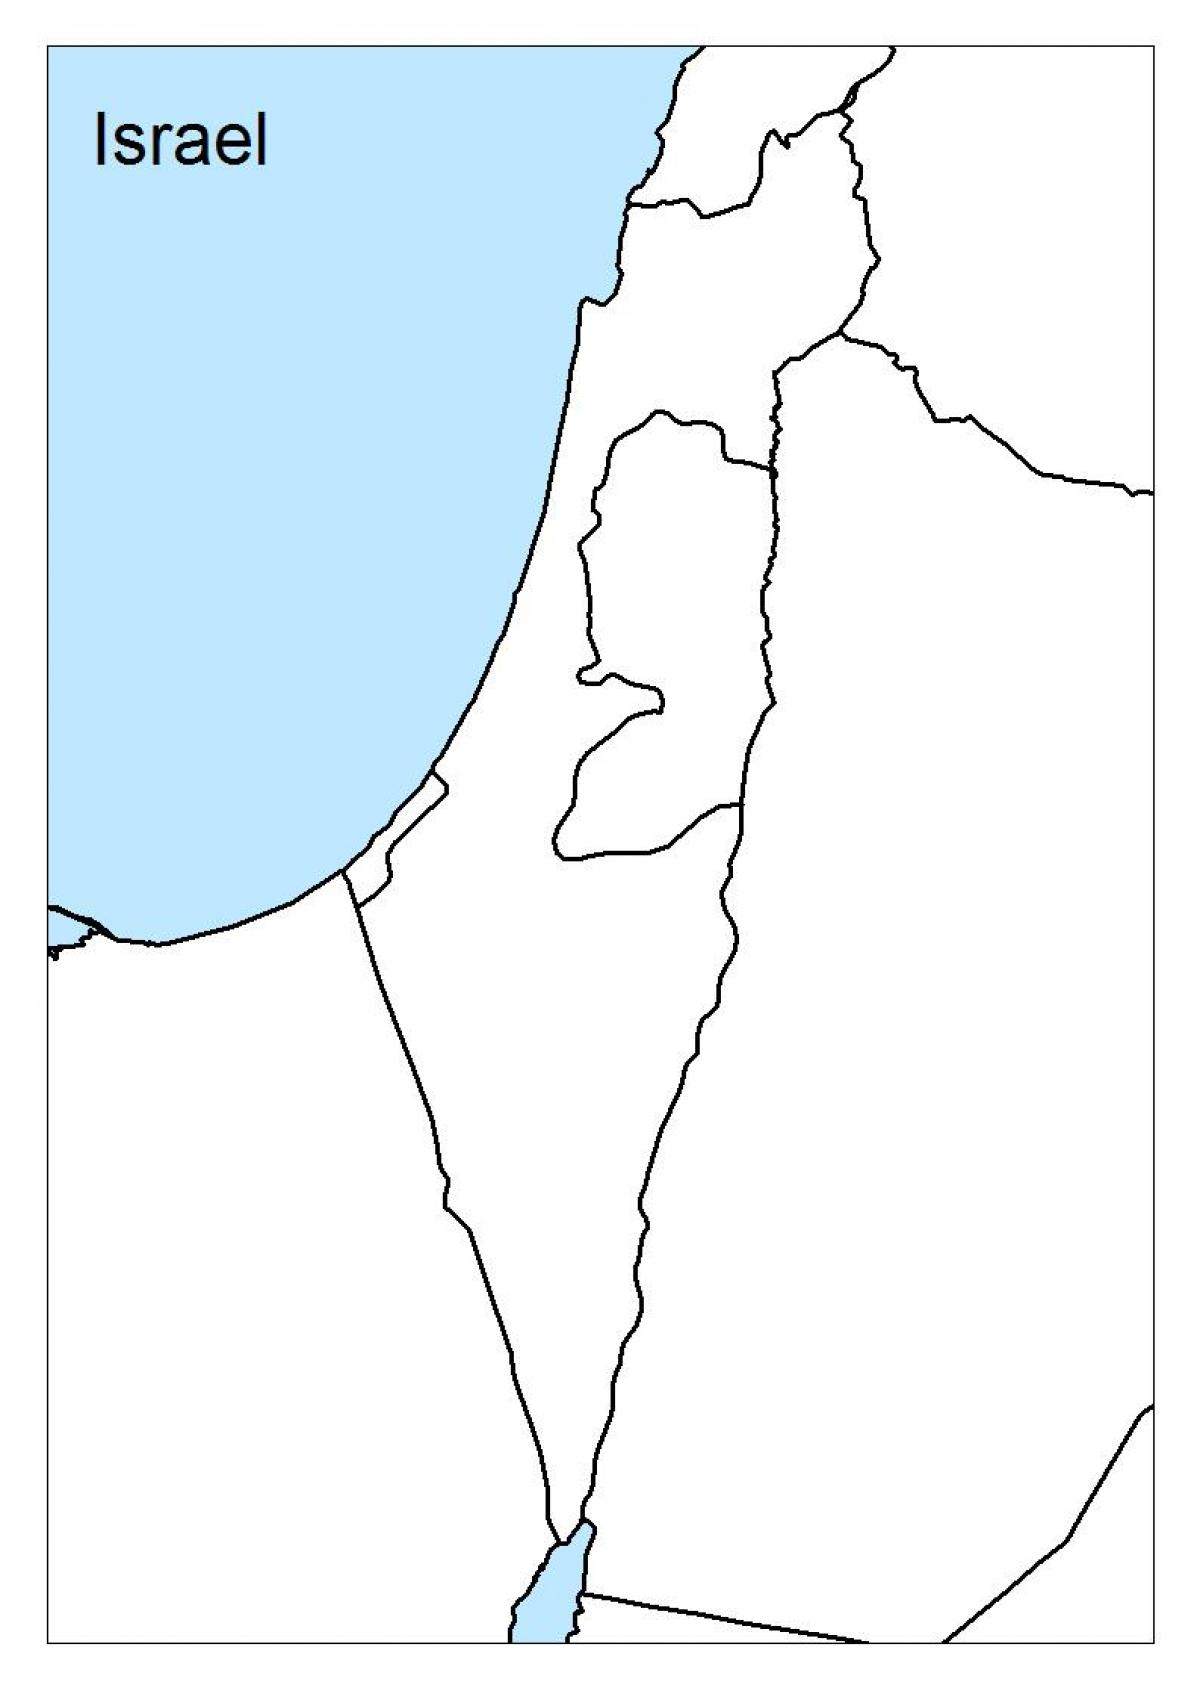 Blank Map Of Israel Israel blank map   Map of israel blank (Western Asia   Asia)